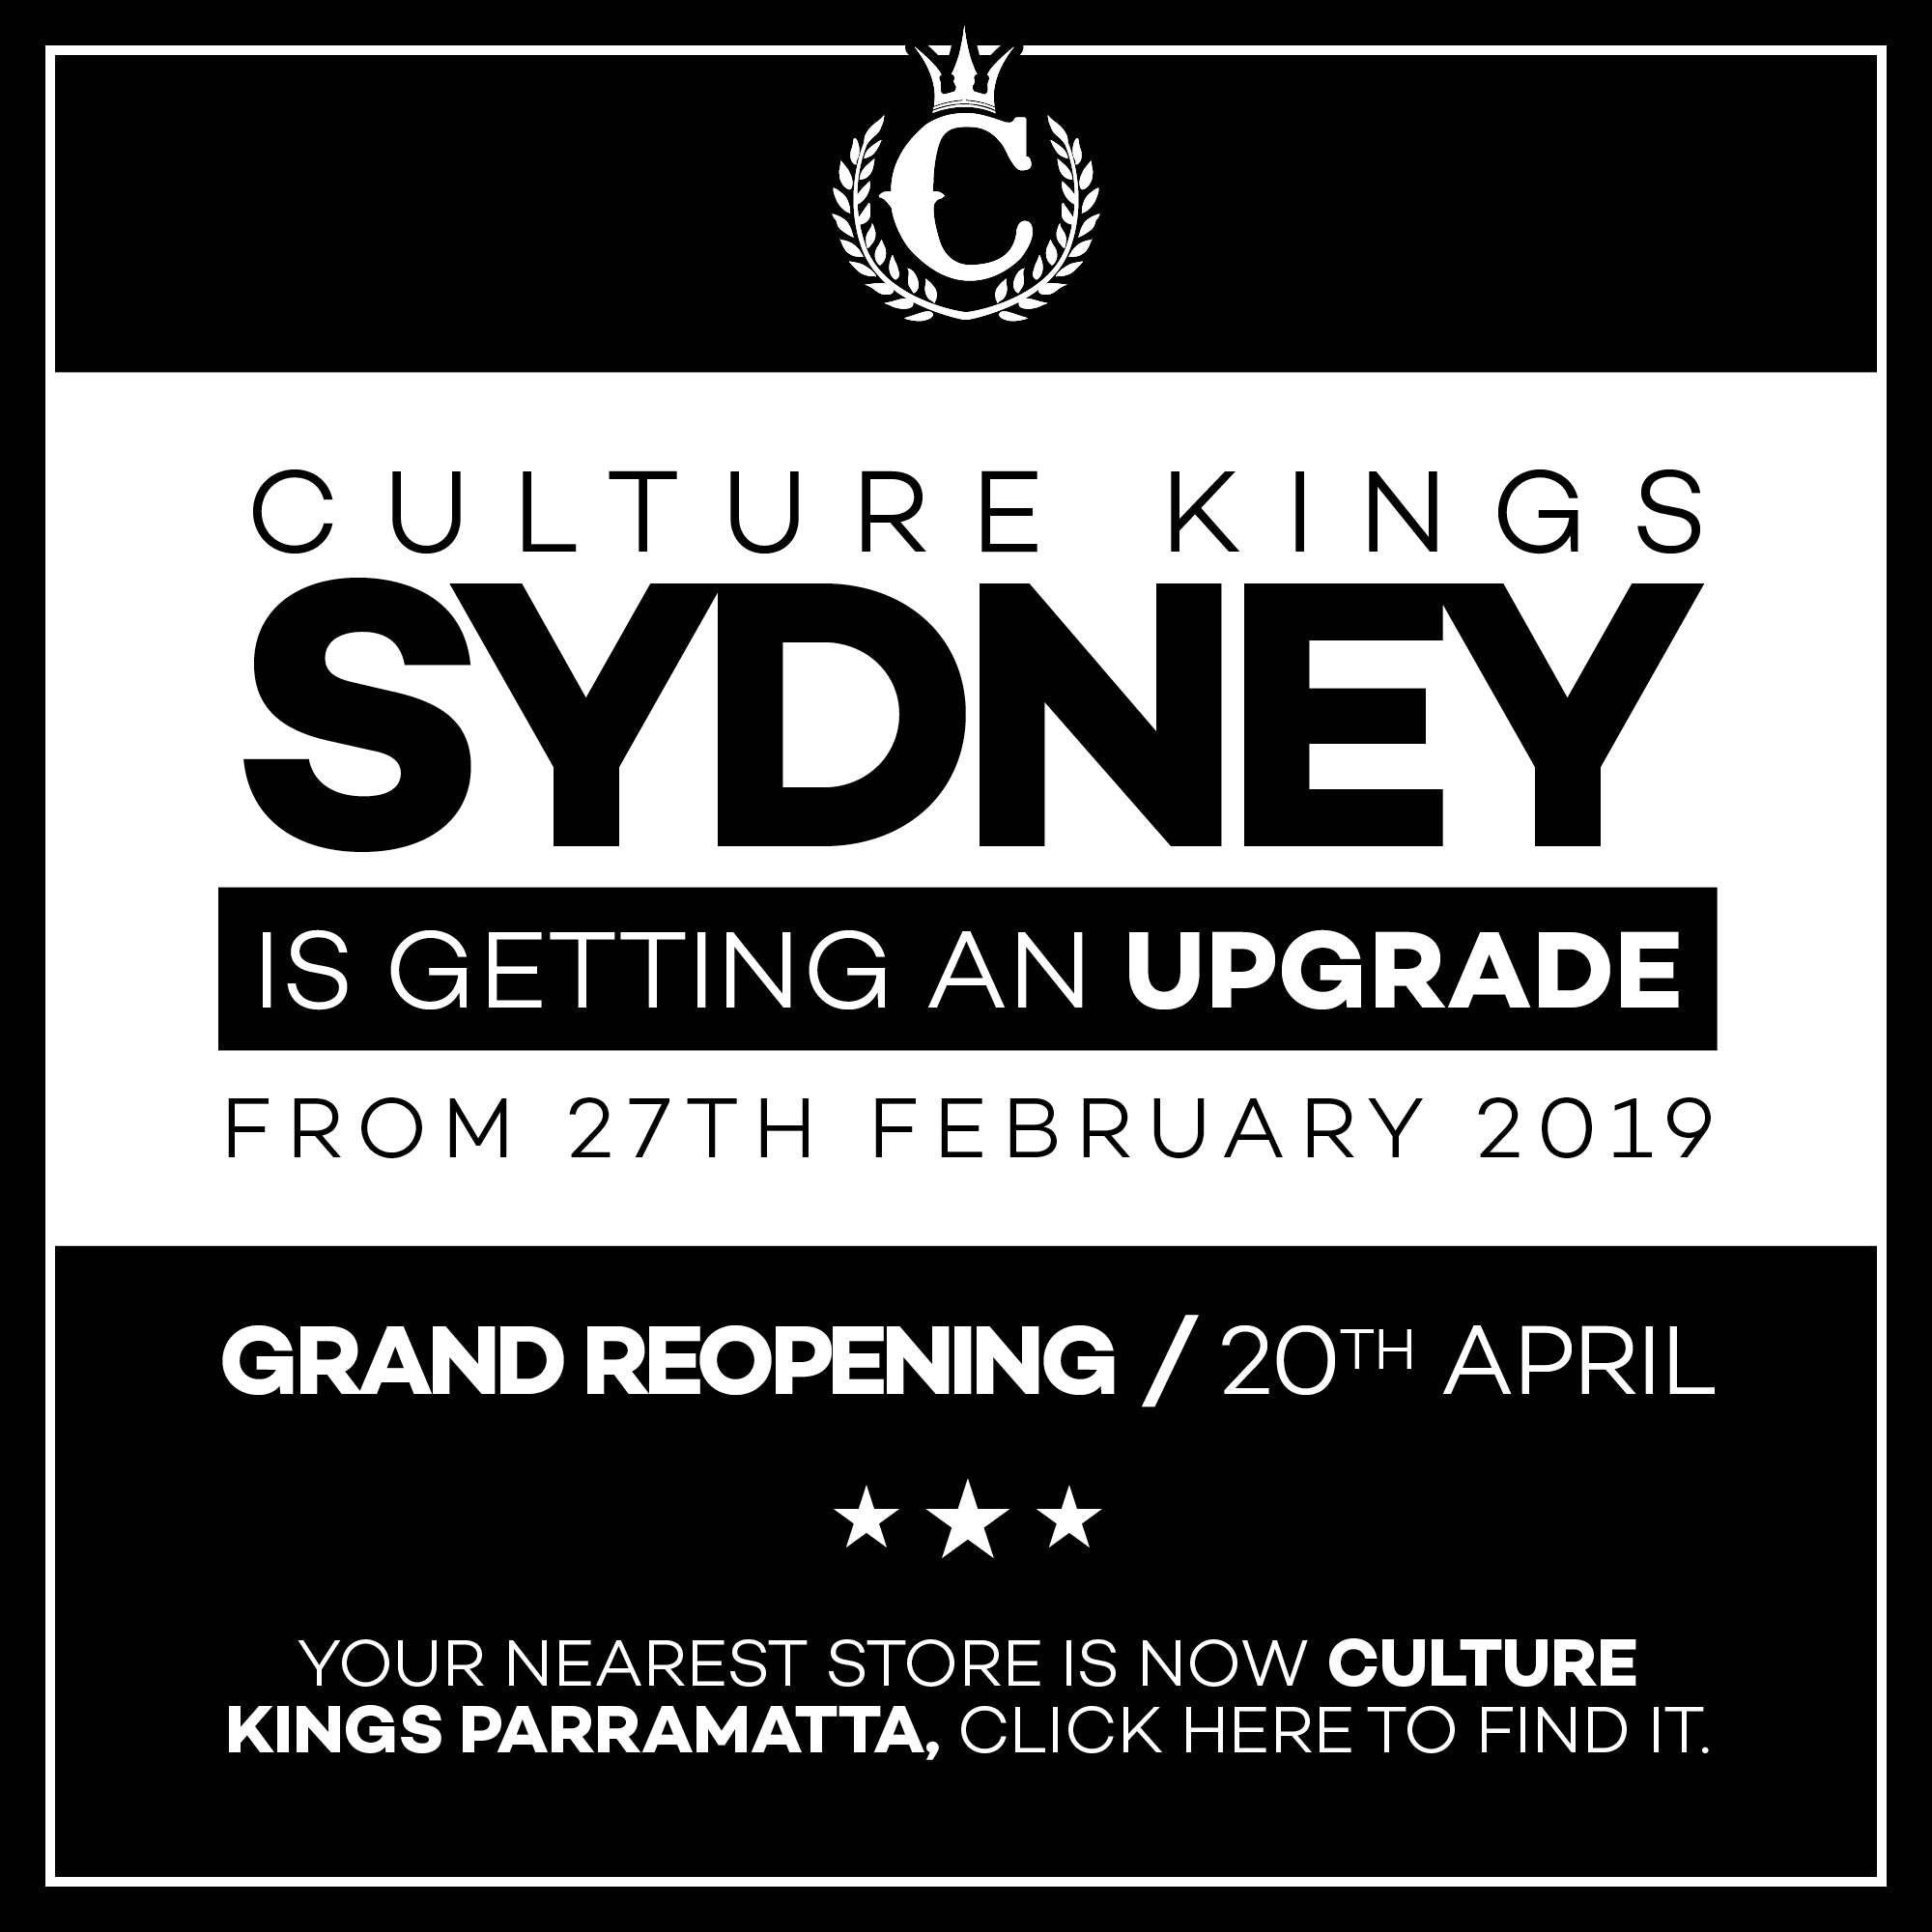 a53bc4ebba8 Sydney Store - Culture Kings